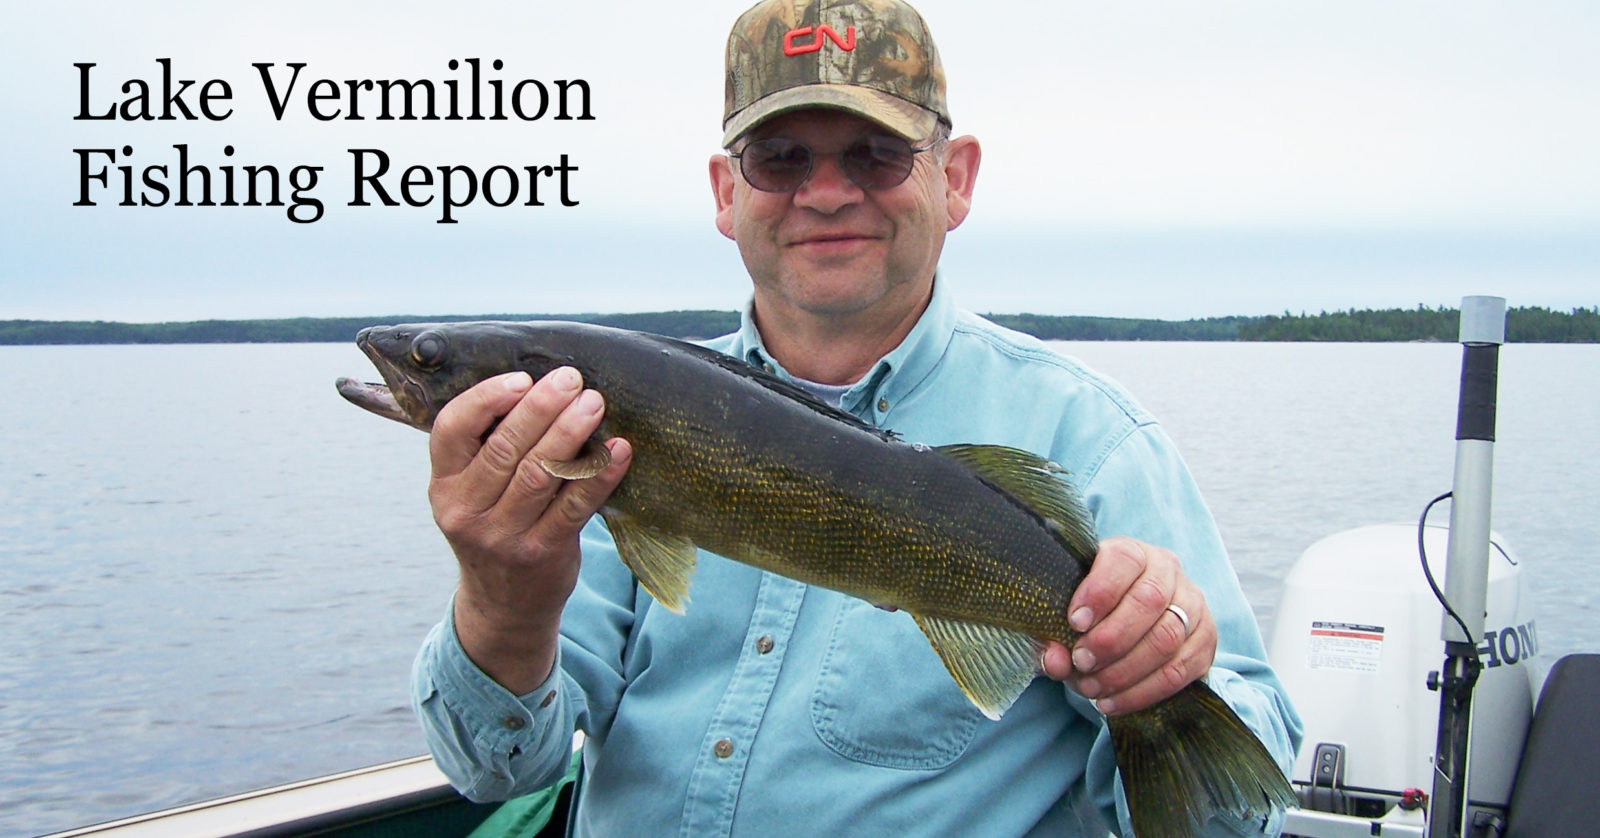 Lake vermilion fishing report for Lake fishing report